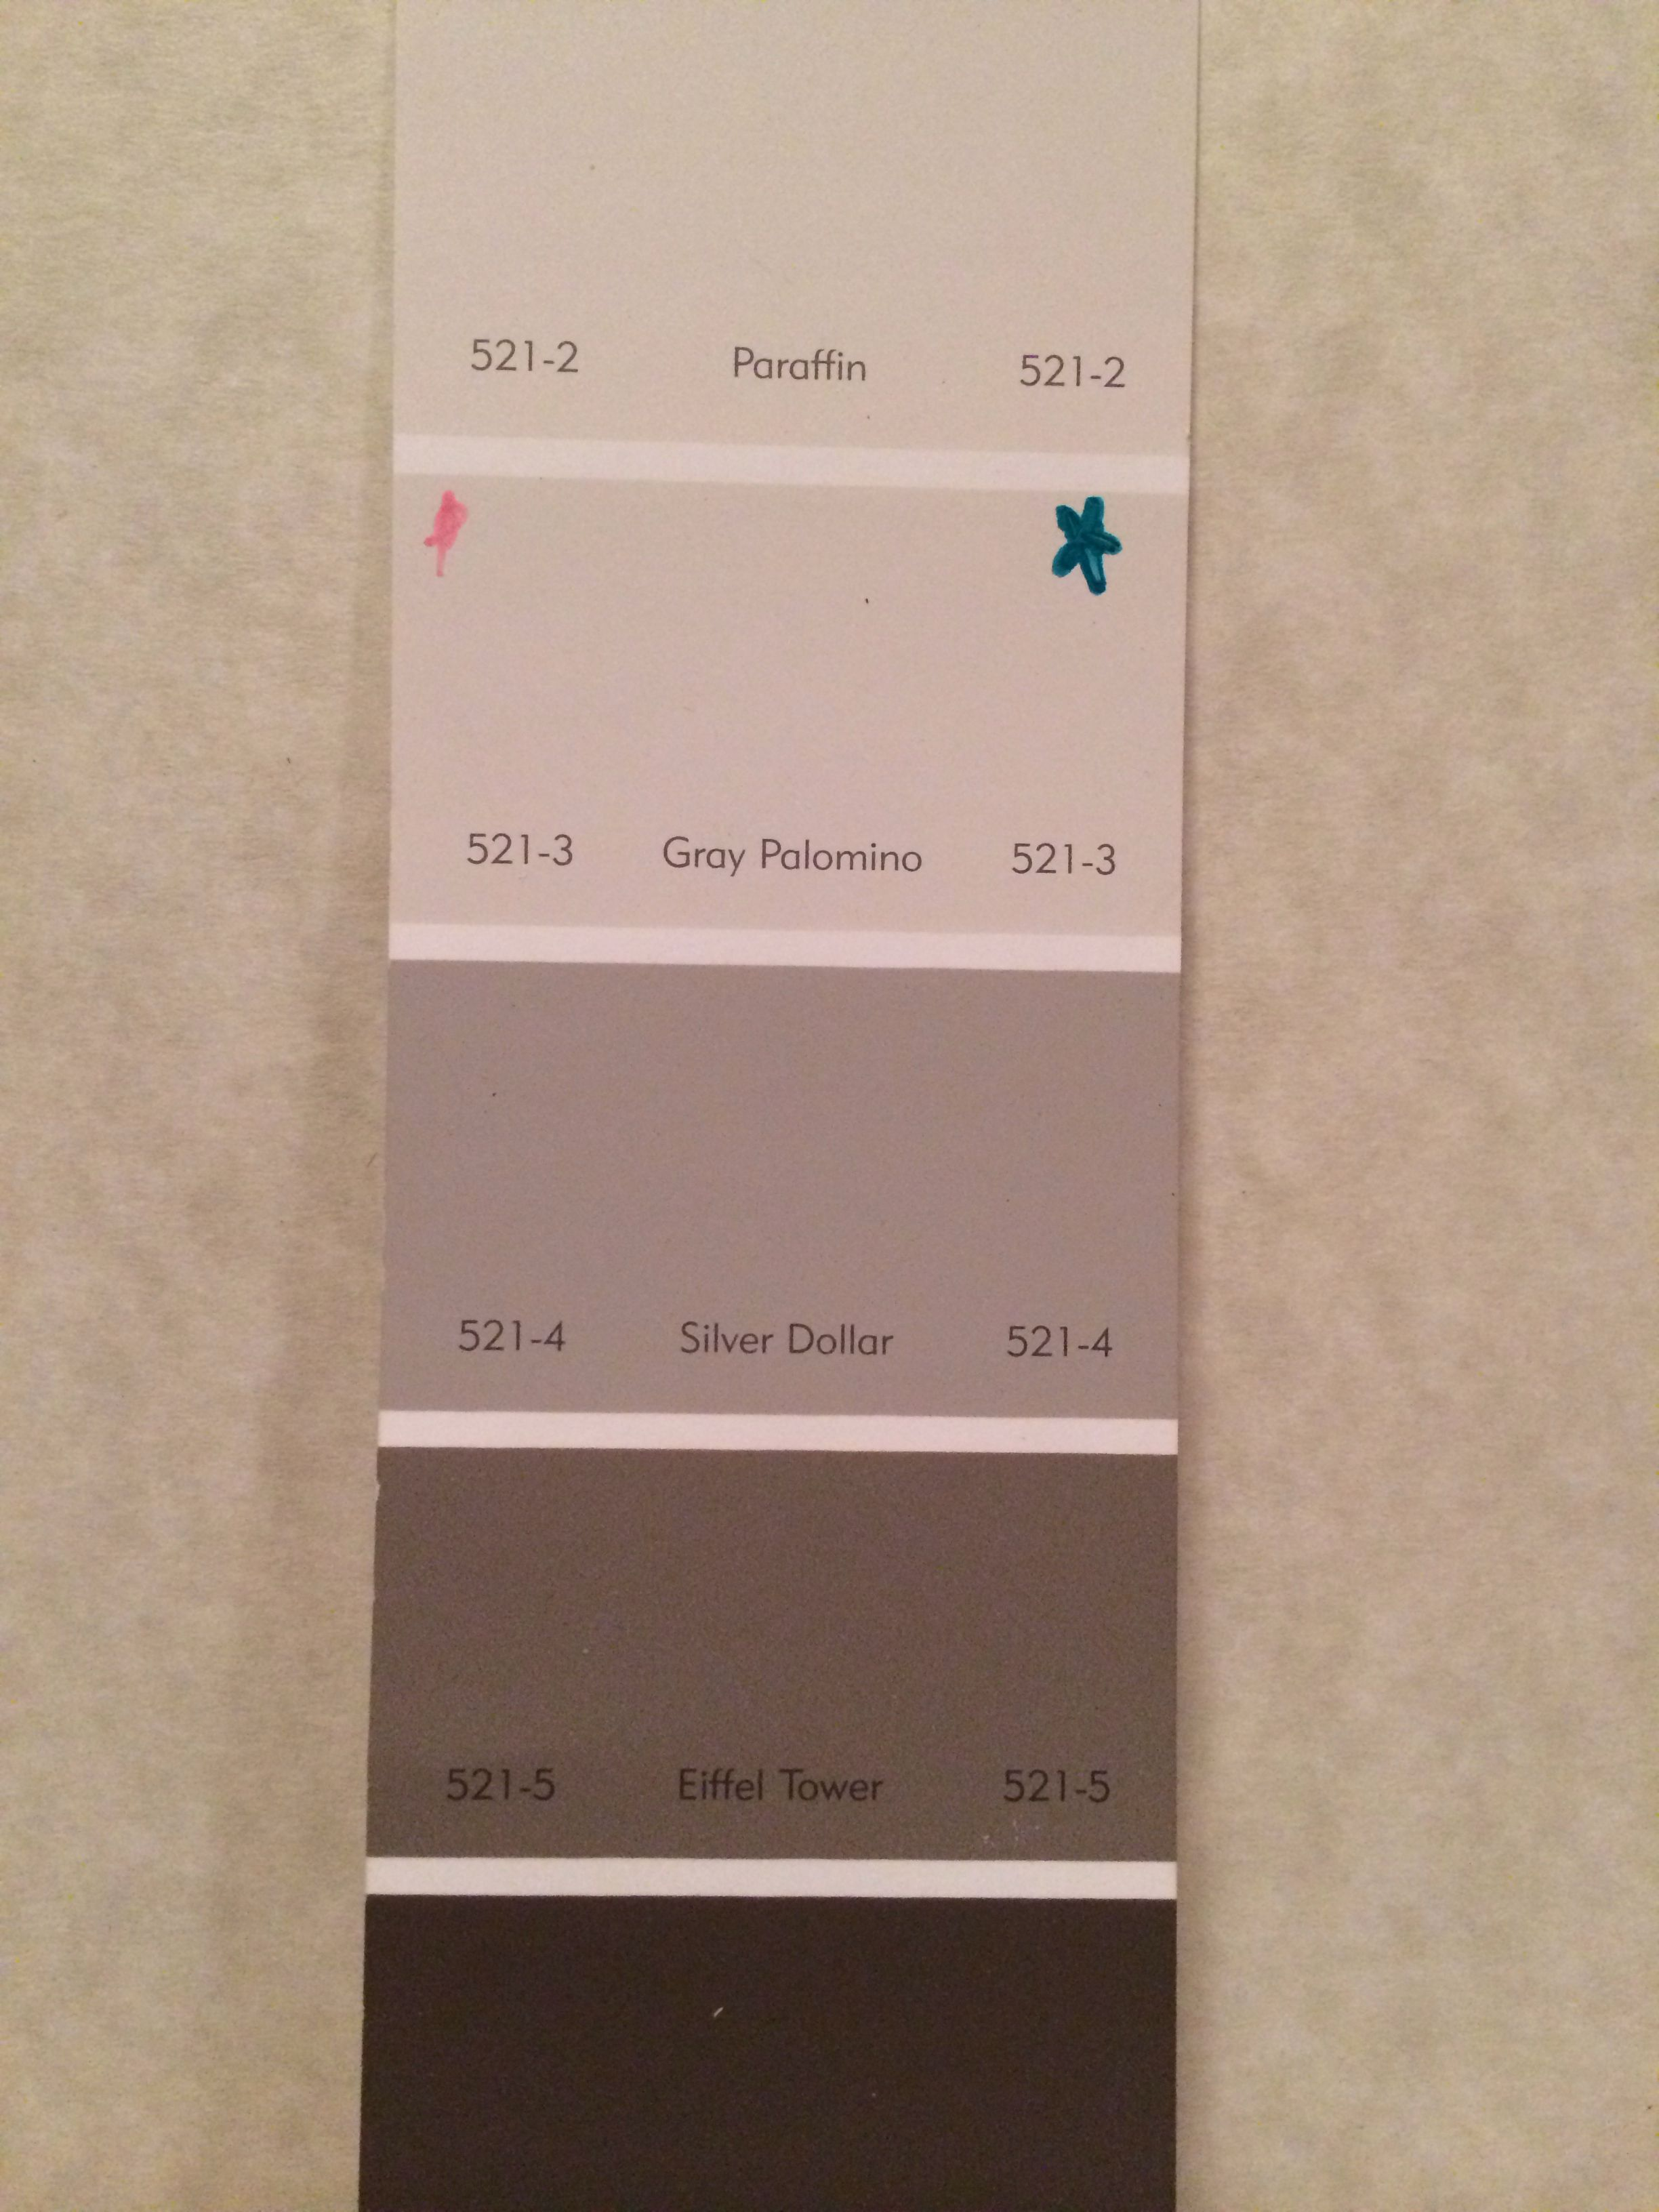 Downstairs and hallway paint color: PPG Gray Palomino 521-3